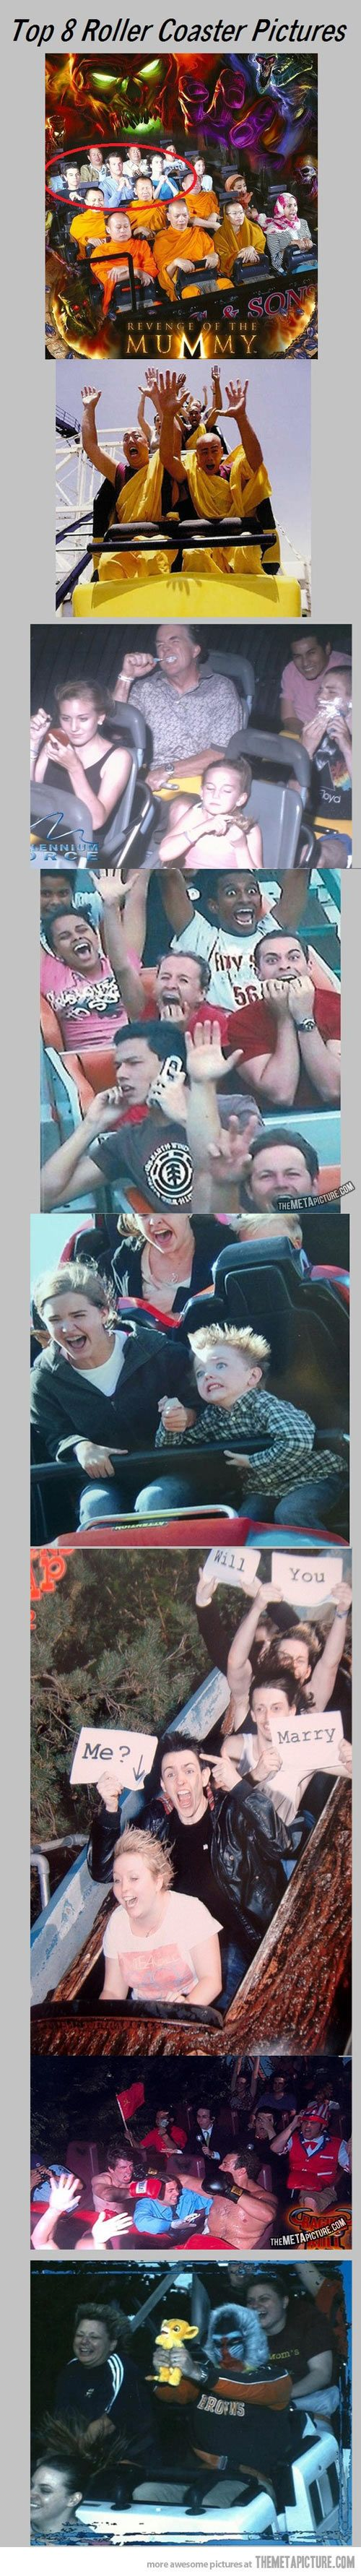 Creative roller coaster pictures… haha these are great!